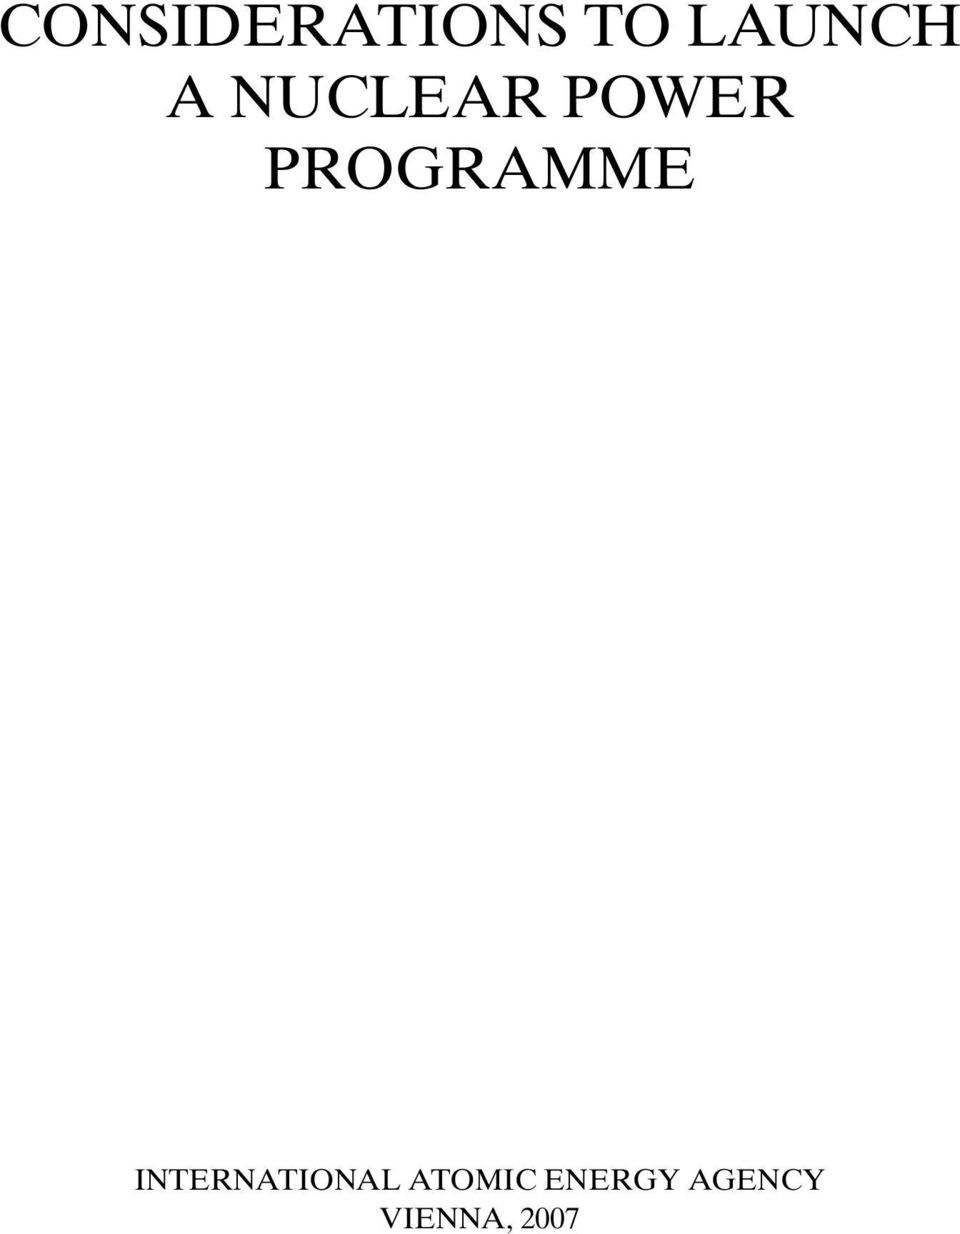 NUCLEAR POWER PROGRAMME SUBTITLE